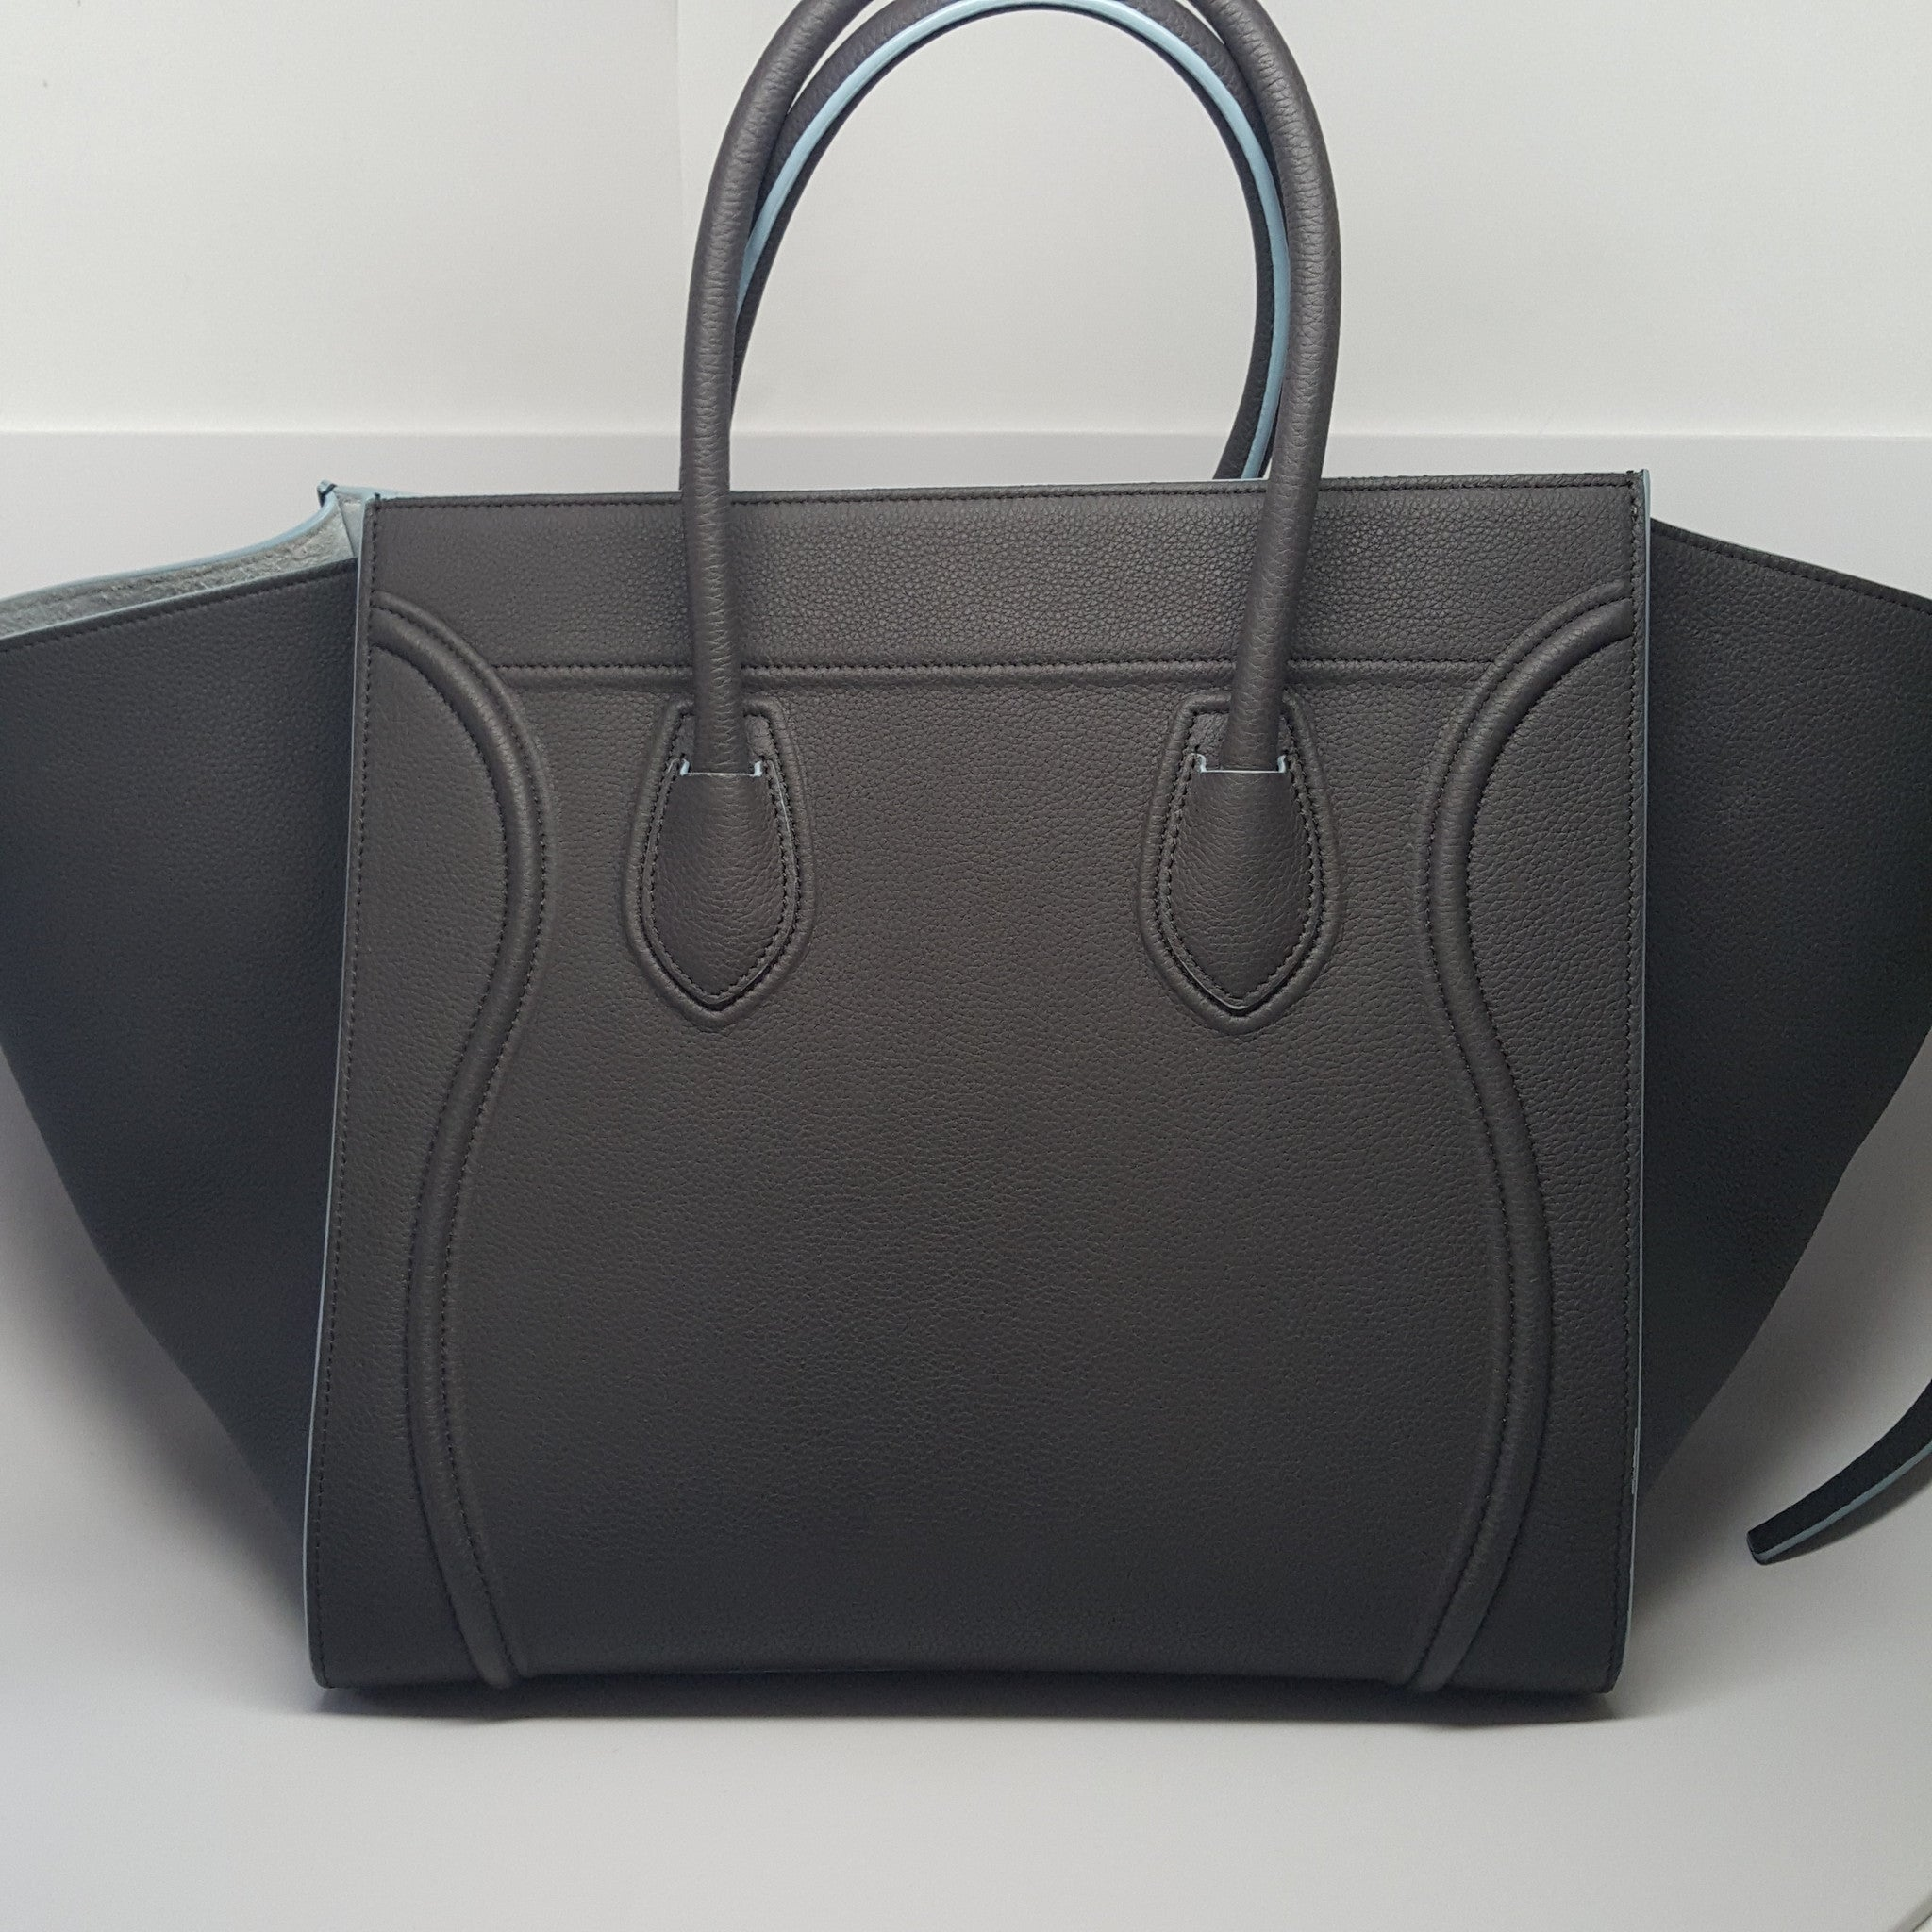 CELINE DARK GRAY AND LIGHT BLUE MEDIUM LUGGAGE PHANTOM BAG